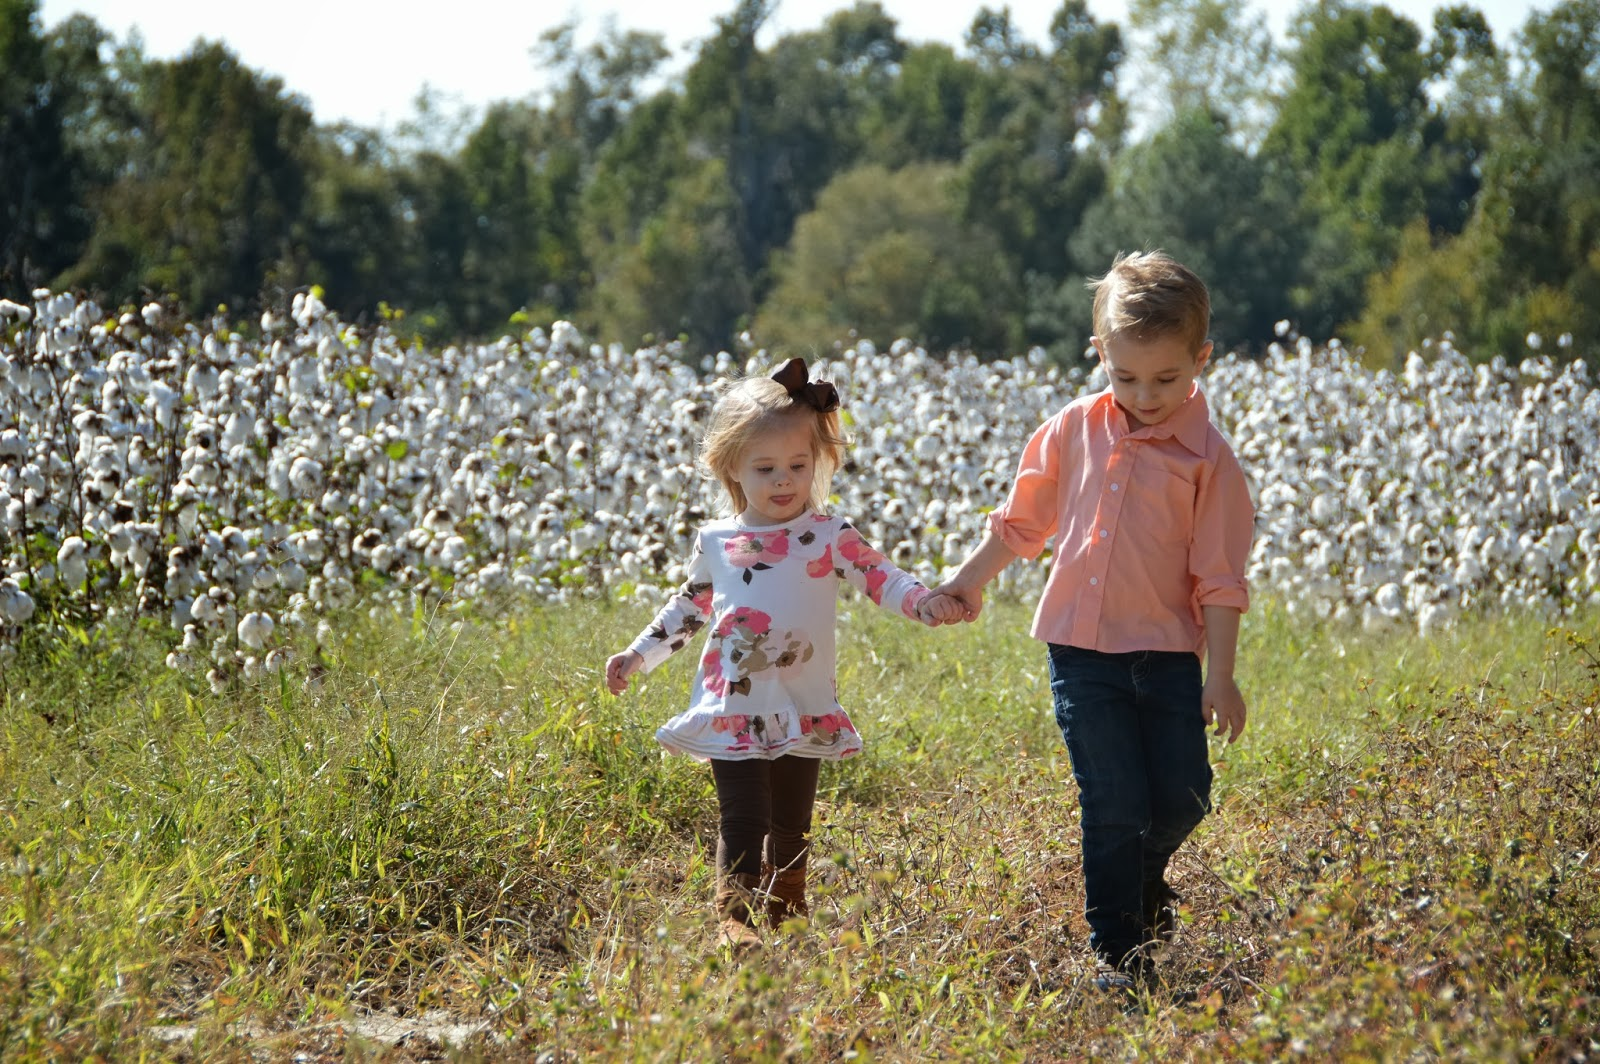 Kids and Cotton